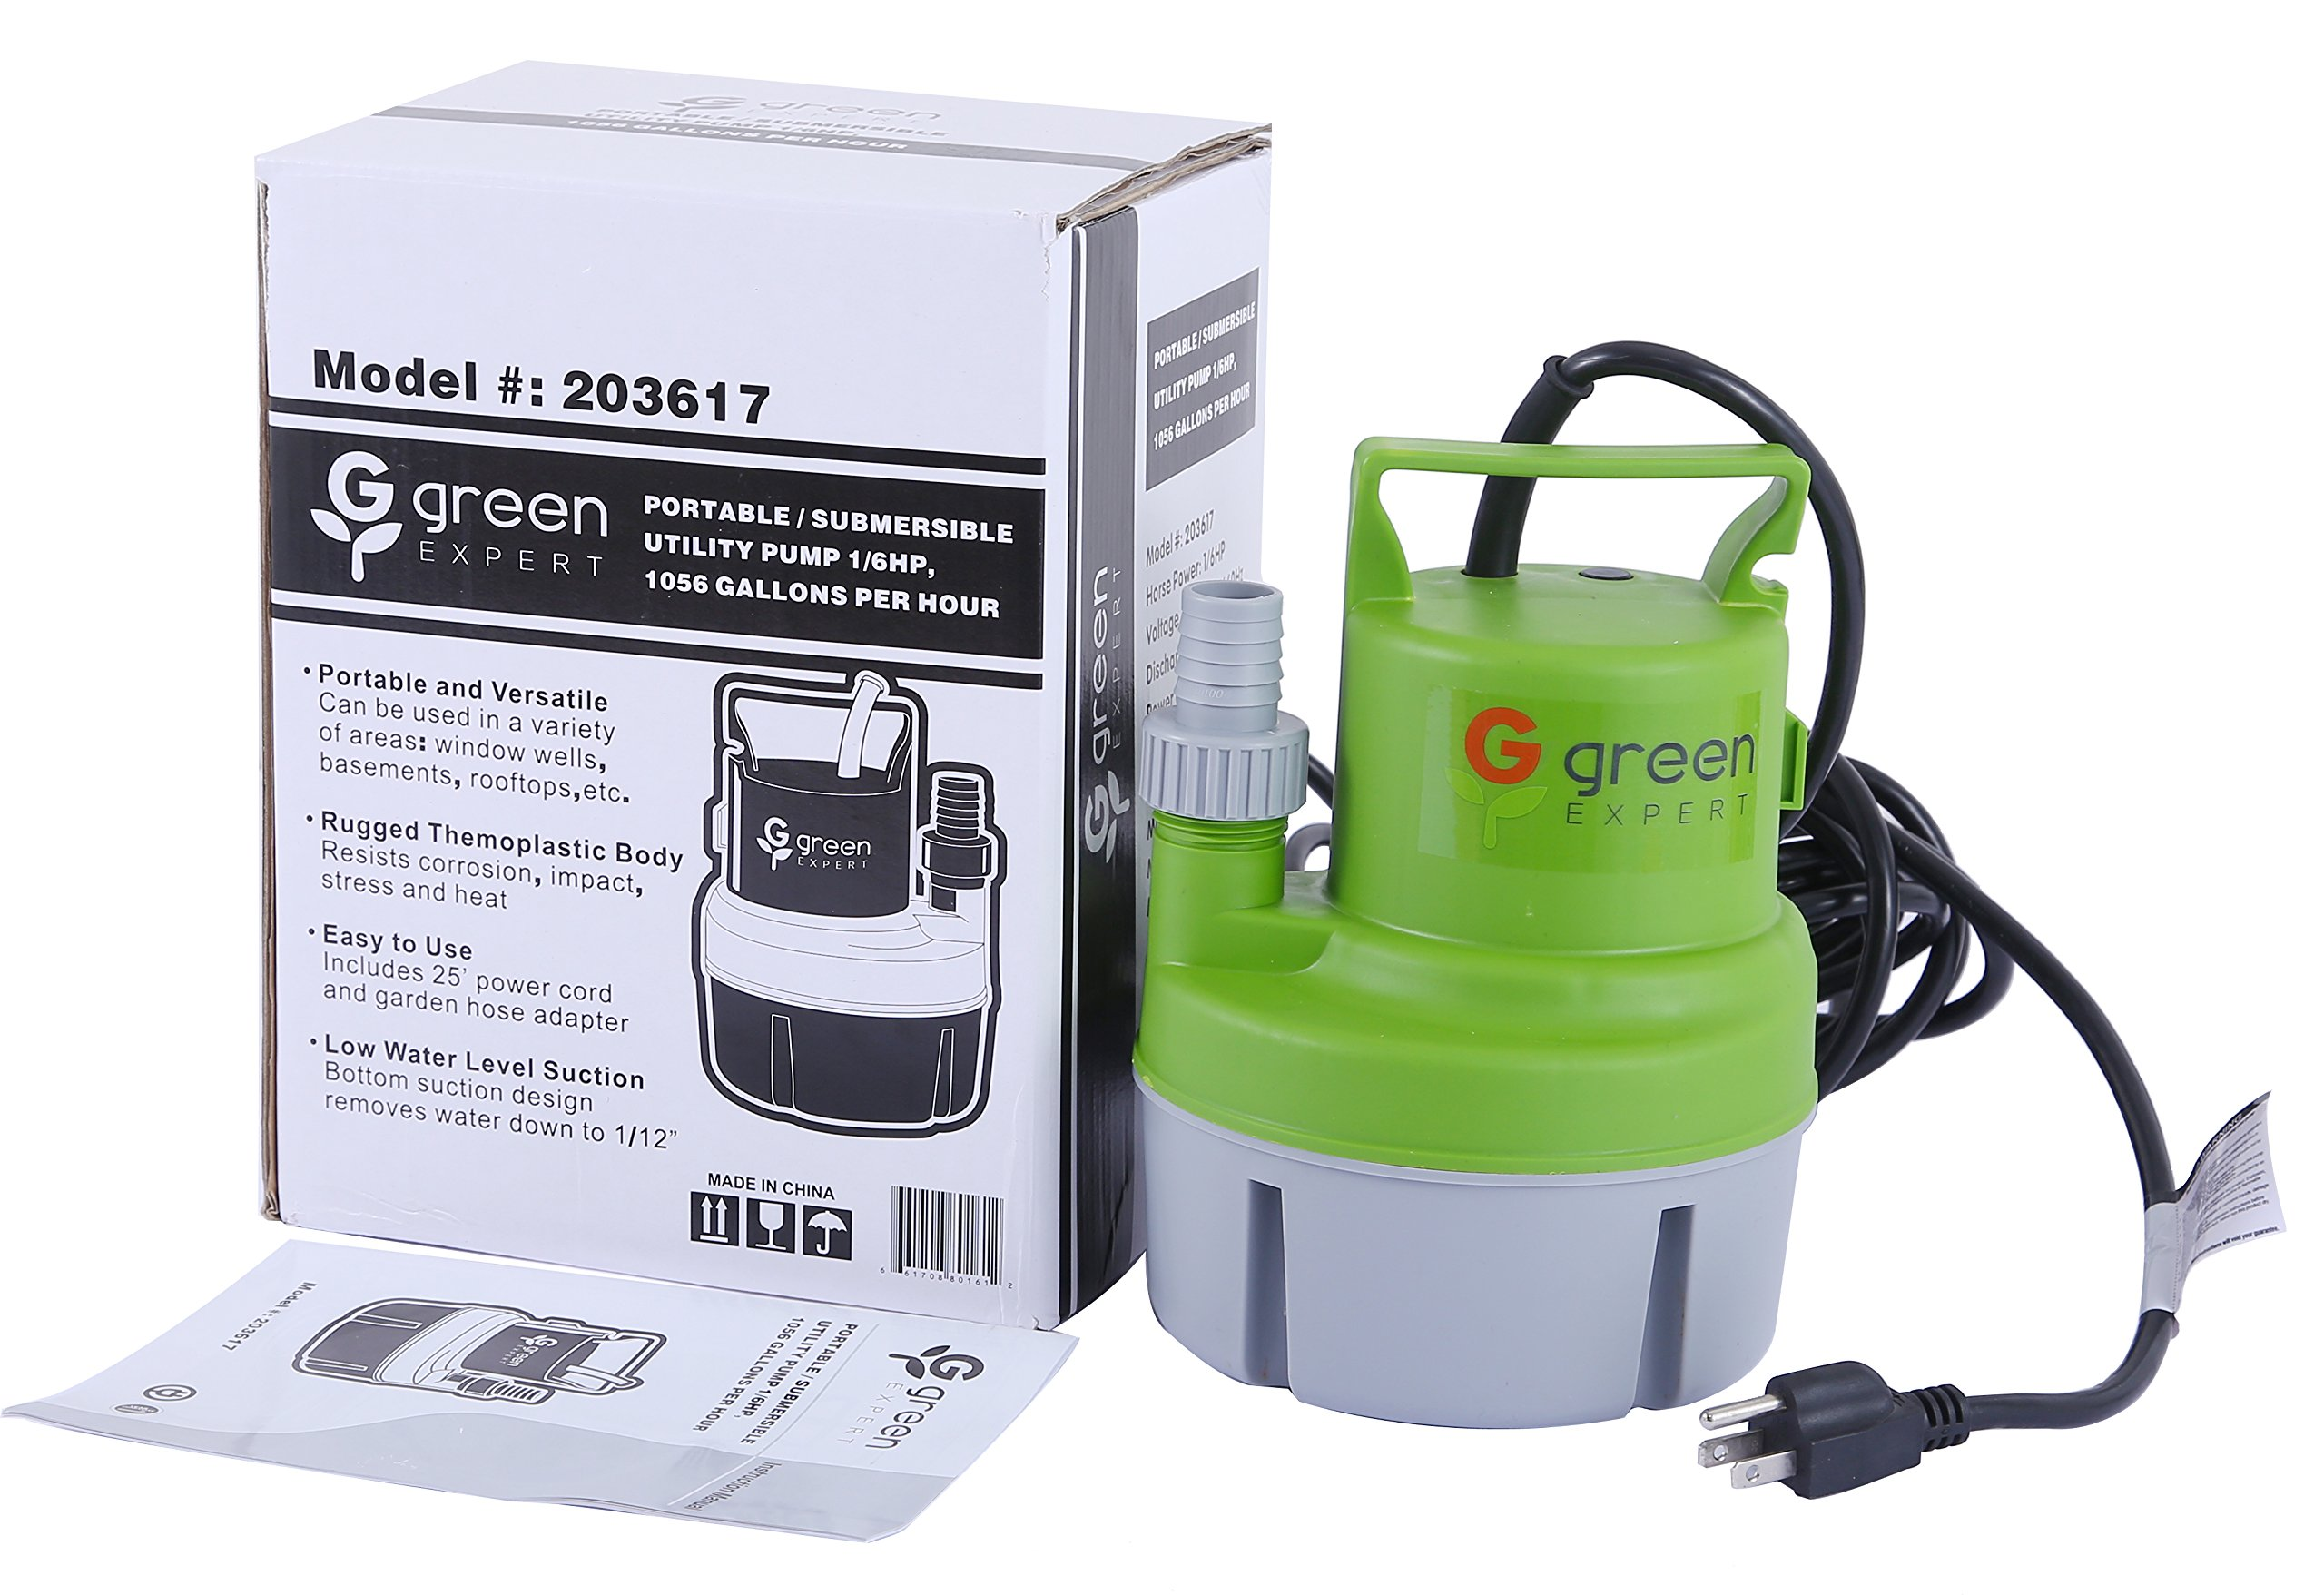 Green Expert 203617 1/6 HP Portable Submersible Utility Pump with 1056 GPH Flow Efficiently for Water Removal Basement Flood Drainage Pump with 3/4'' Adaptor Available for Standard Garden hose by G green EXPERT (Image #3)